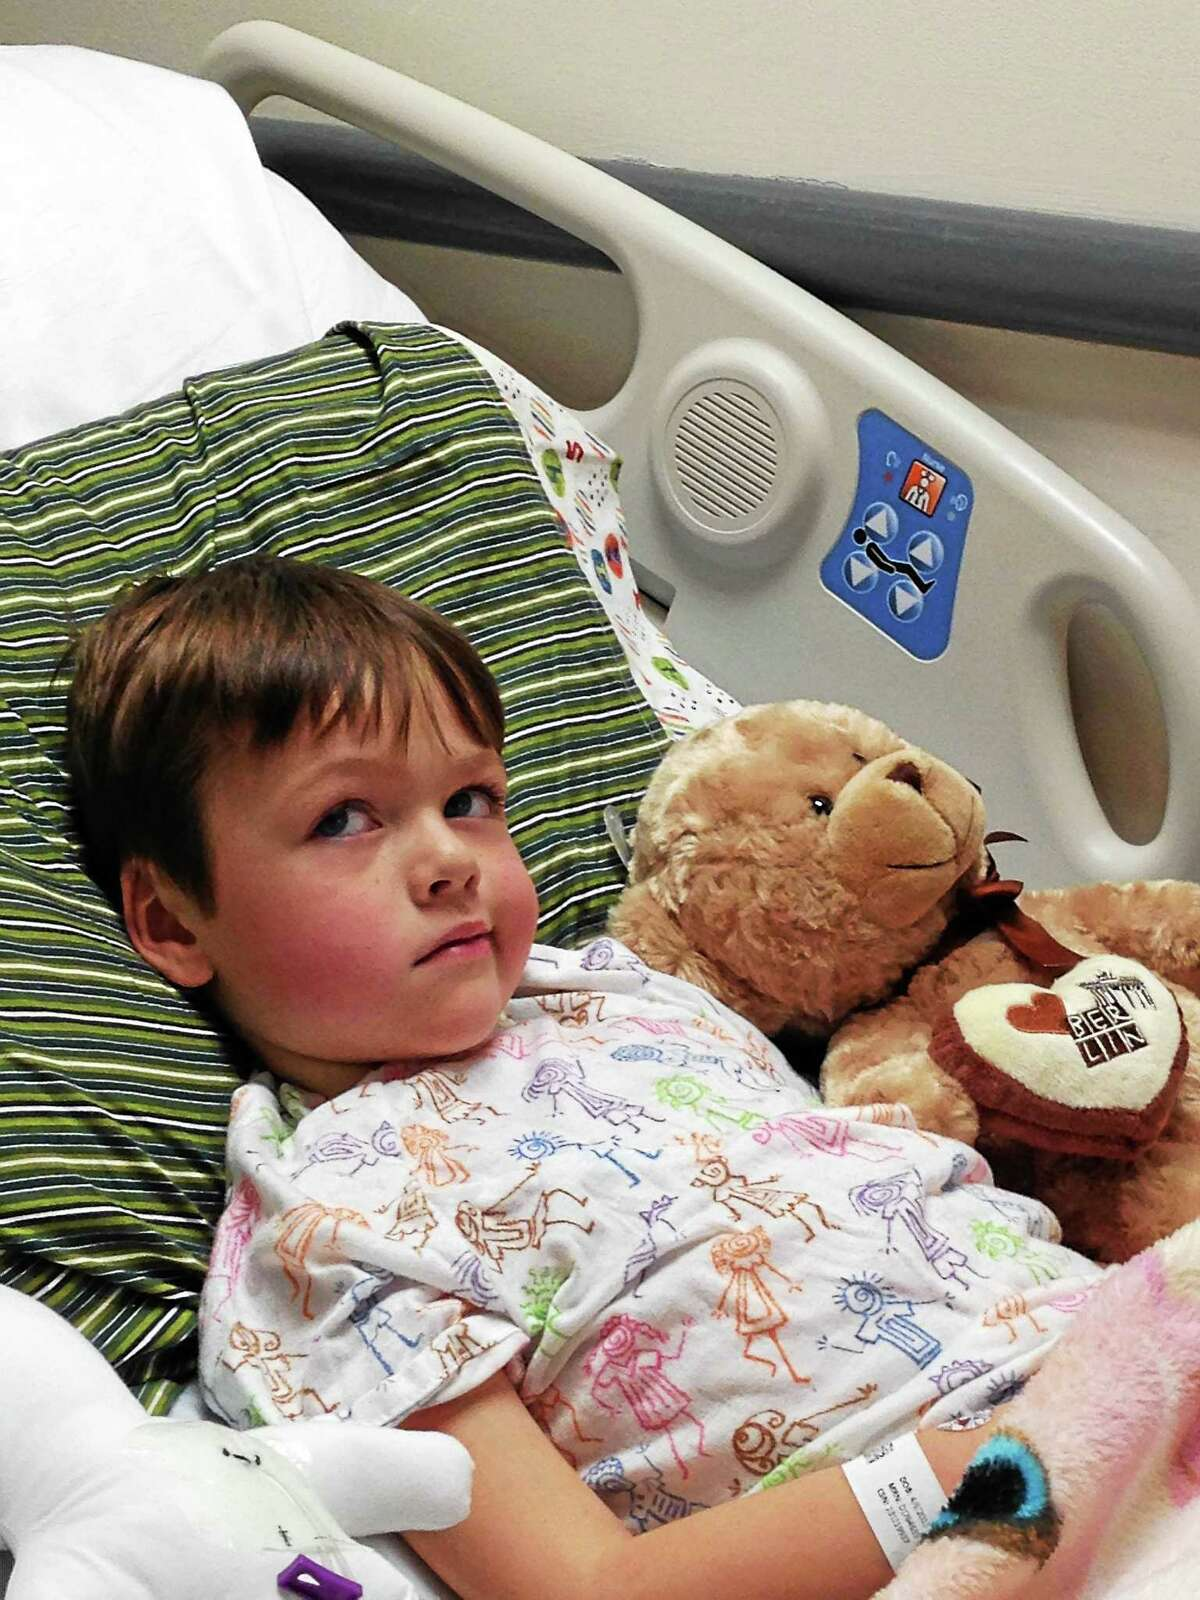 A fundraiser will be held Monday in West Haven for Mickey Macholl, 4, who has a rare and aggressive form of cancer.